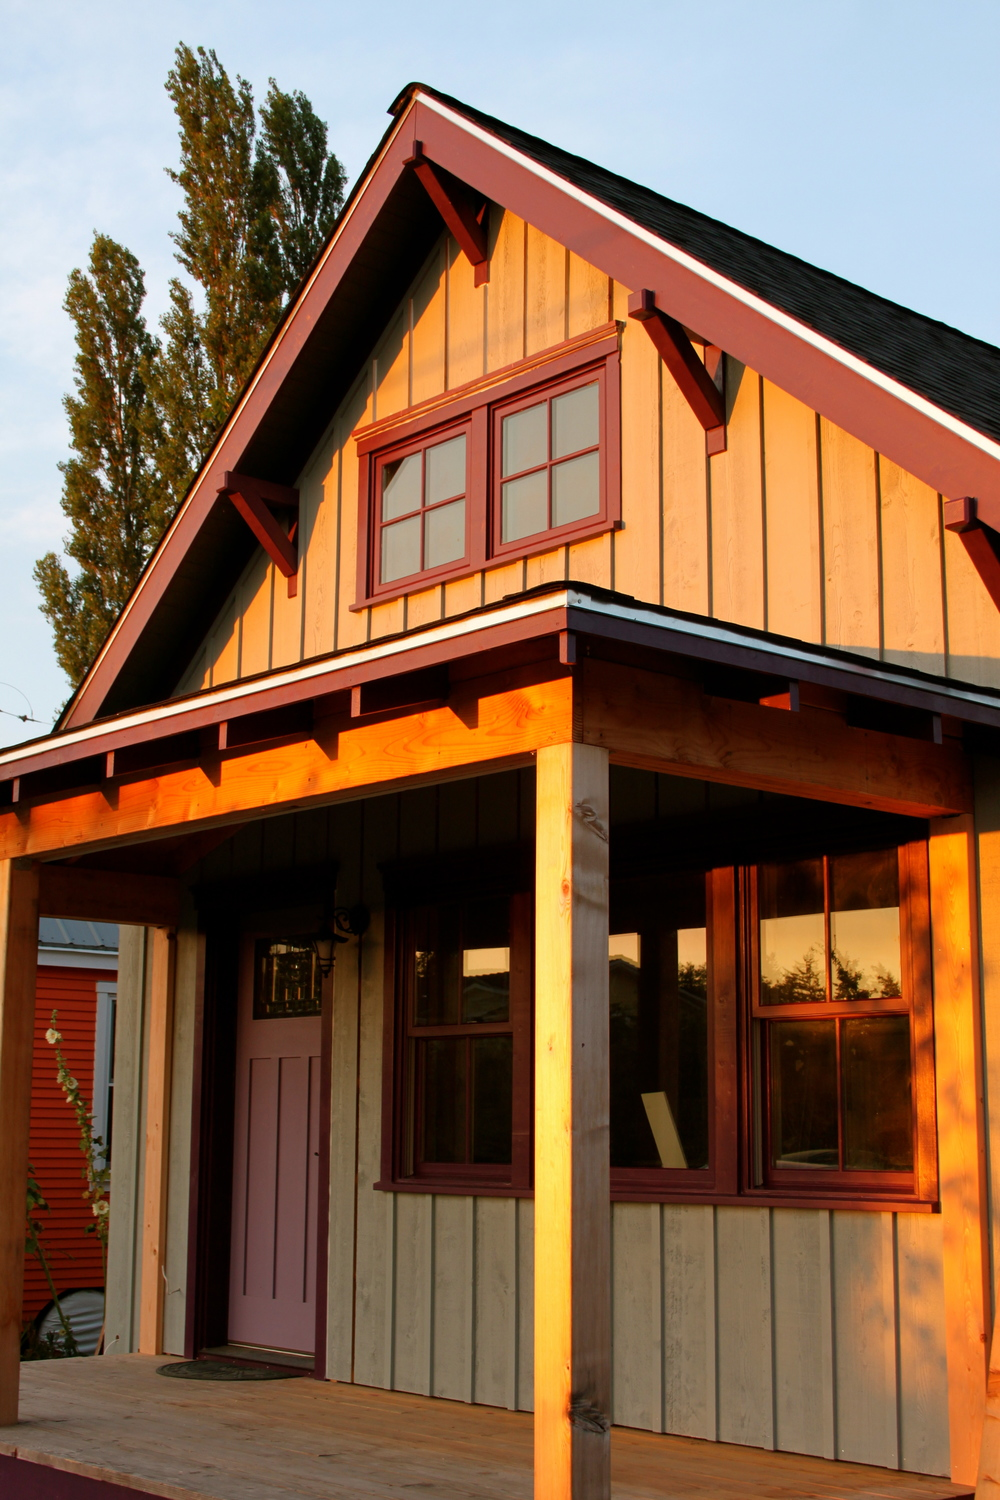 Beekeeper 39 S Bungalow Update Still More Siding And